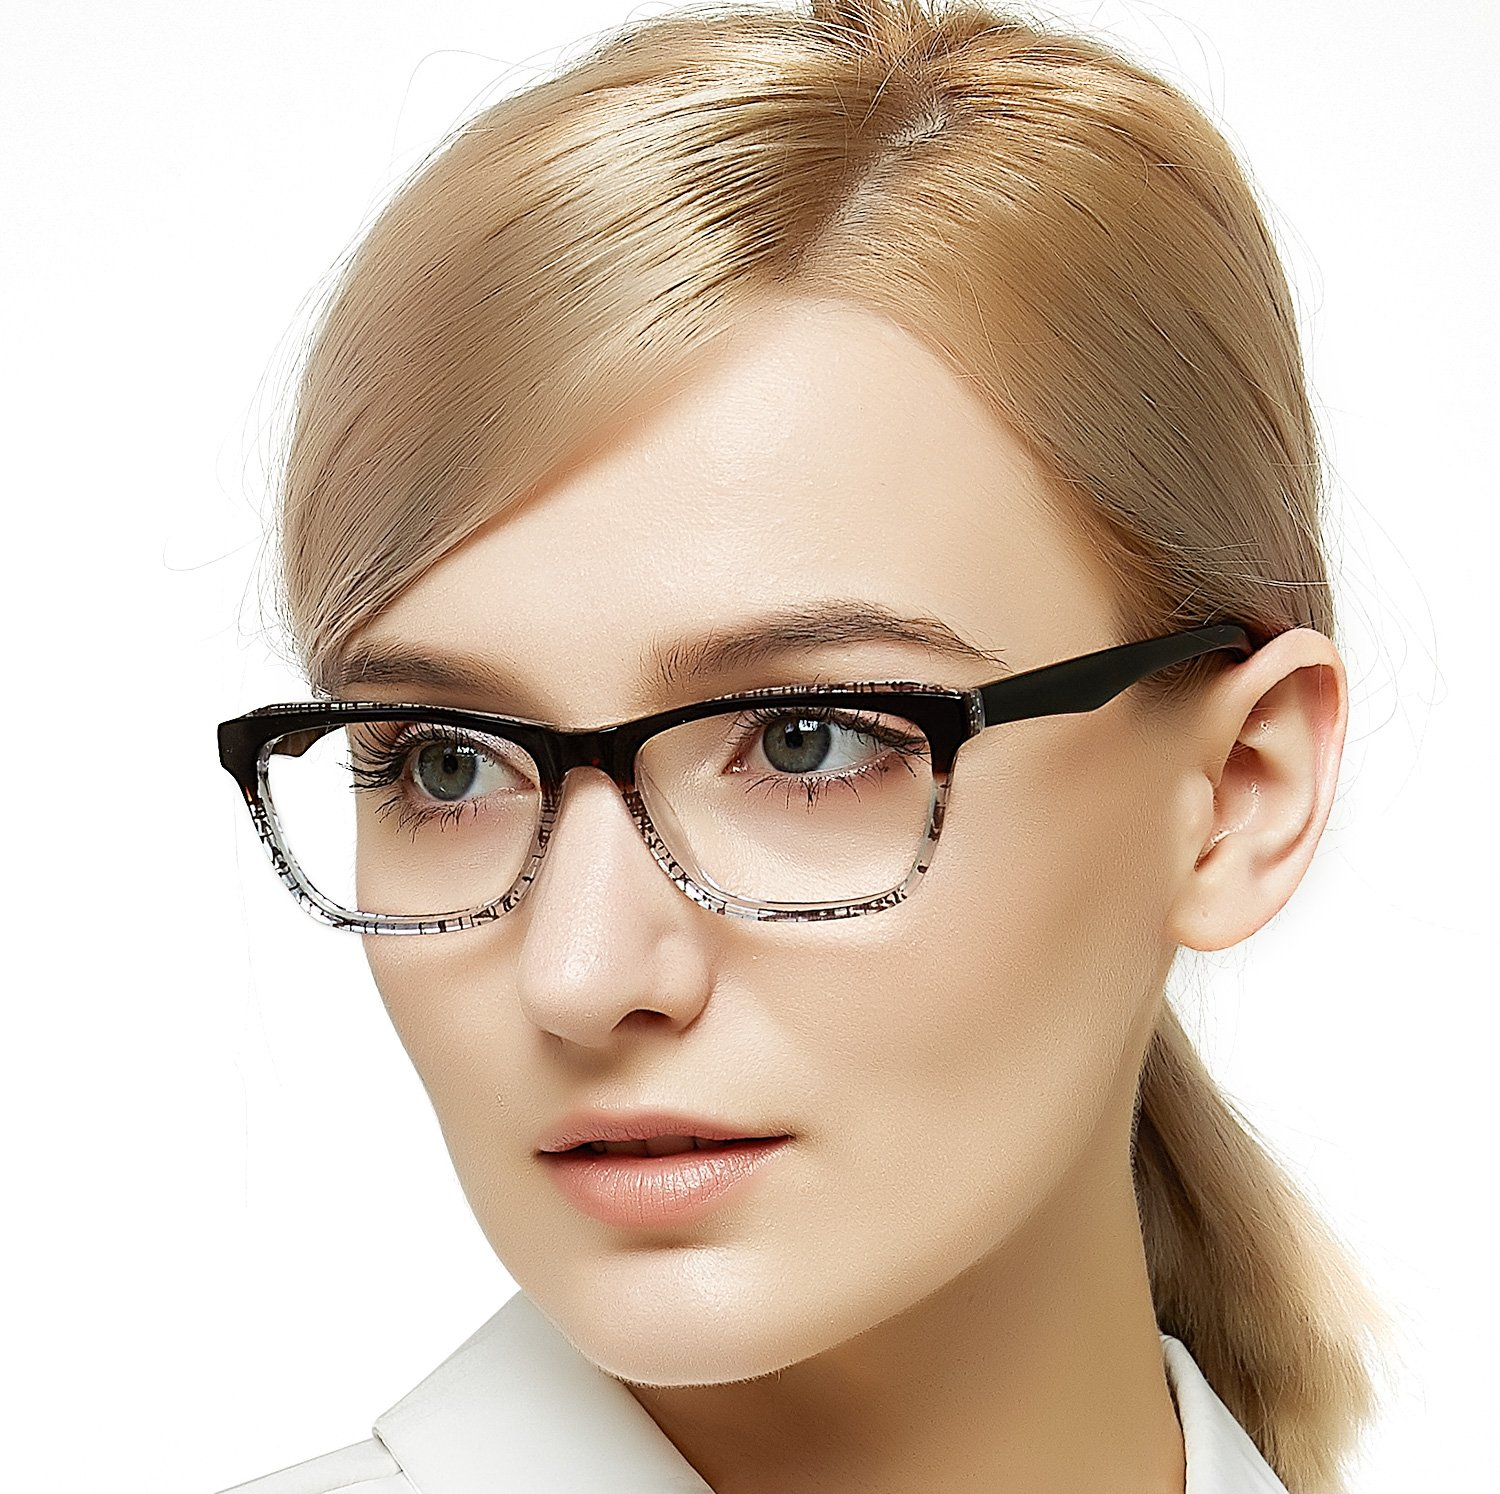 OCCI CHIARI Womens Rectangle Double Color Fashion Eyewear Frame Clear Lens Glasses(Brown, 53-15-140)